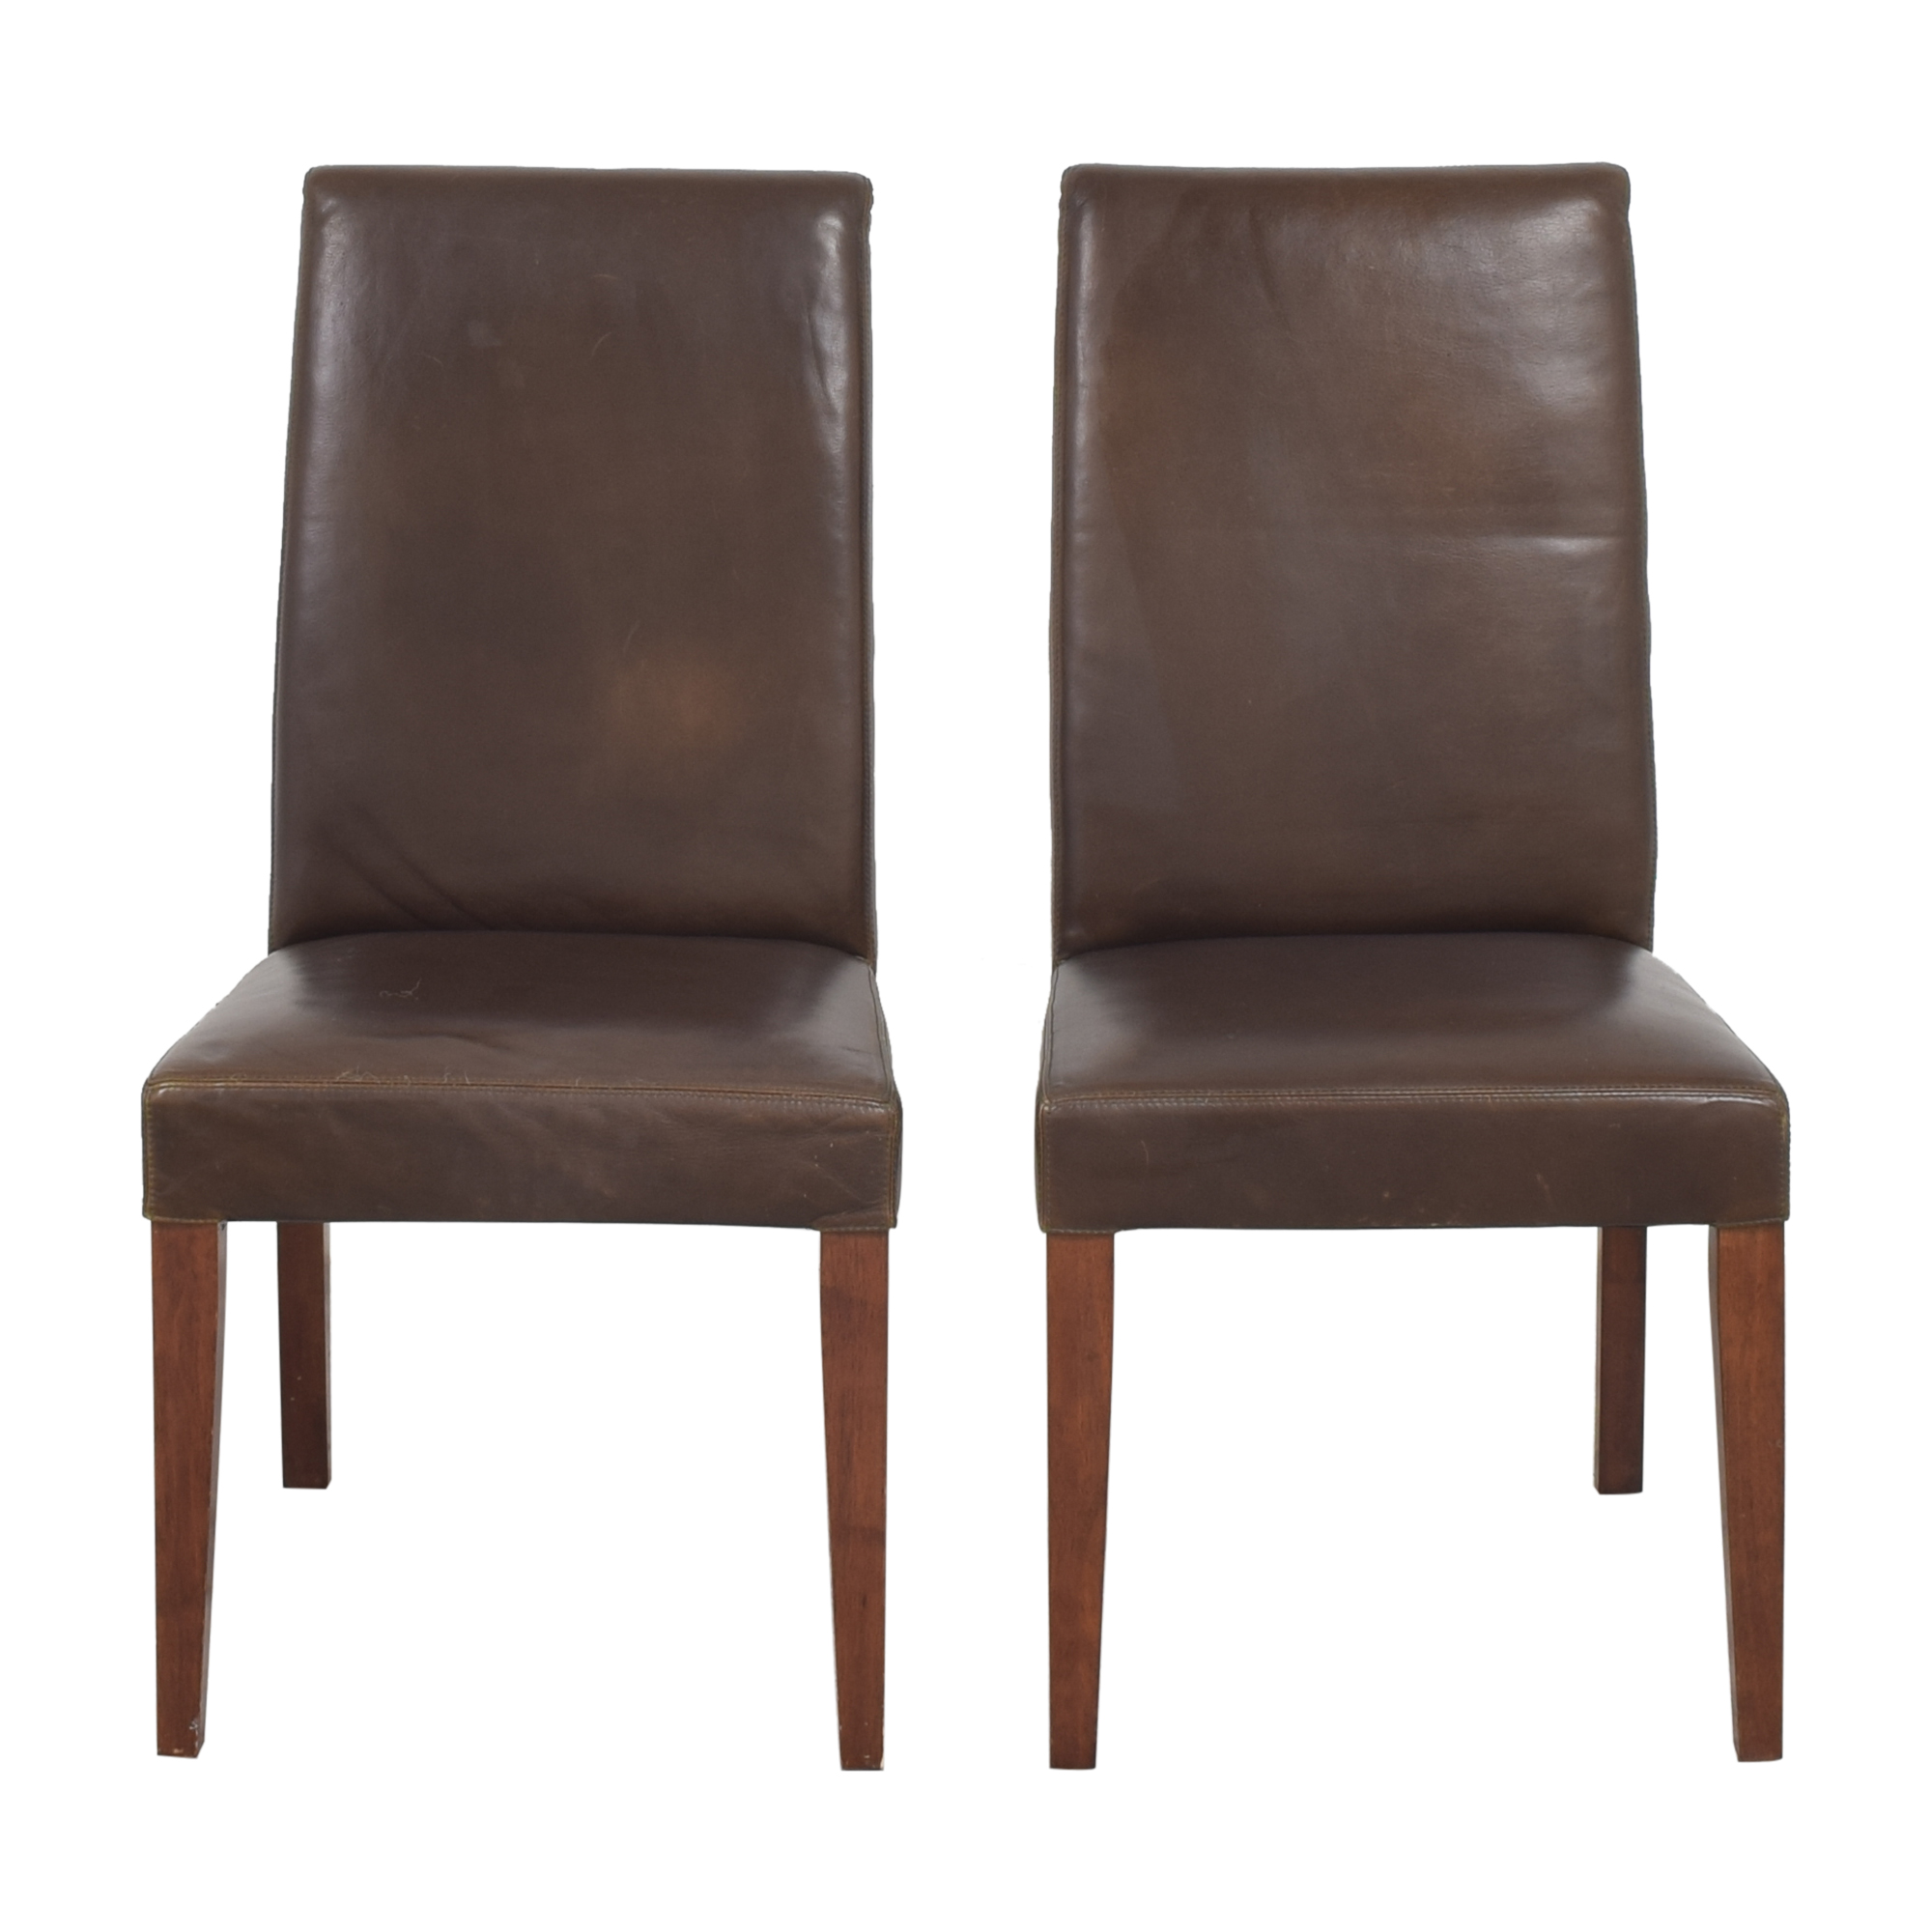 Pottery Barn Pottery Barn Grayson Dining Side Chairs price